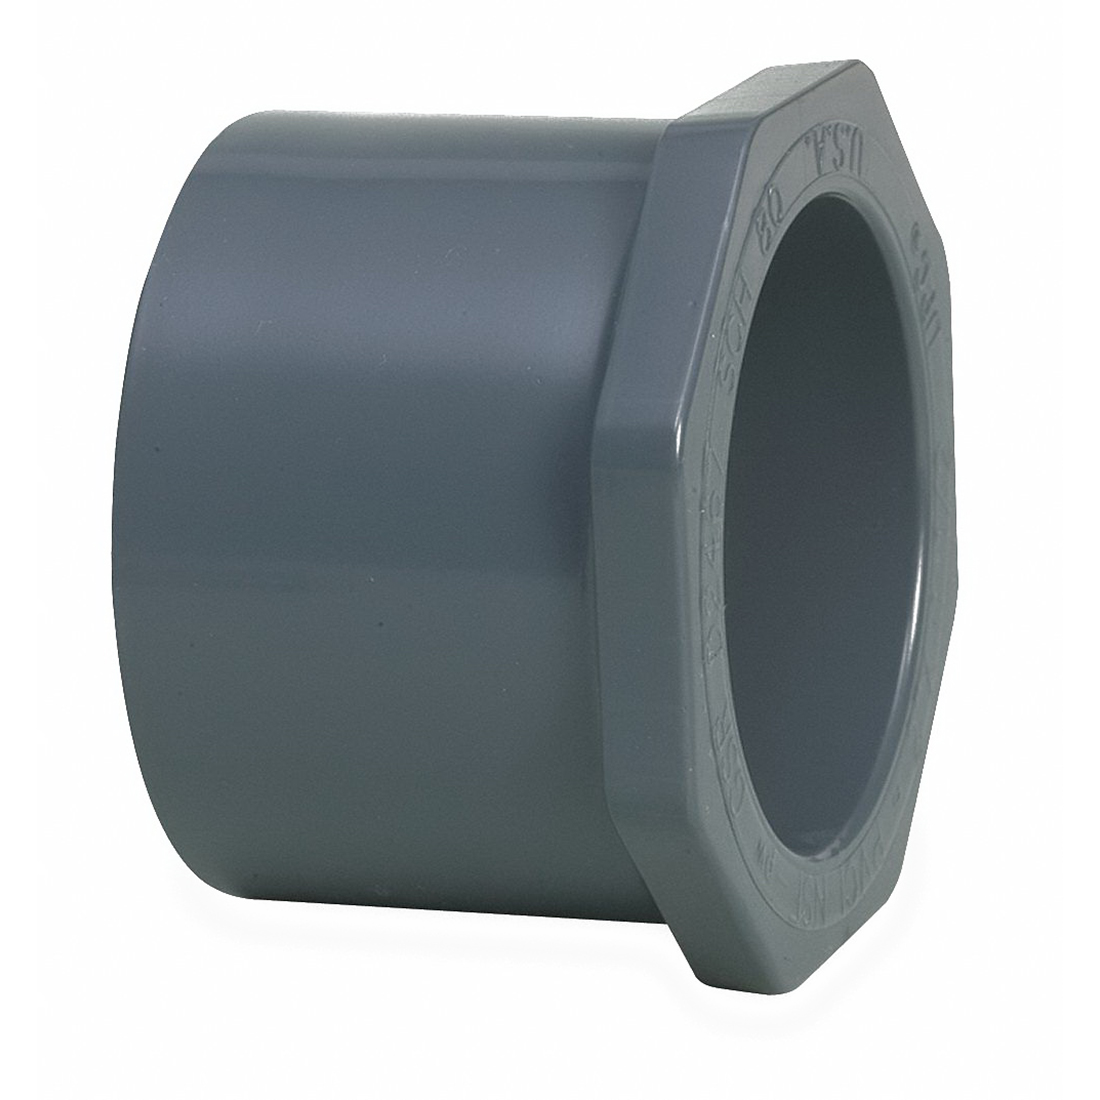 Gray PVC SCH 80 Flush Style Reducer Bushing, 6 in x 4 in, Spigot x Socket